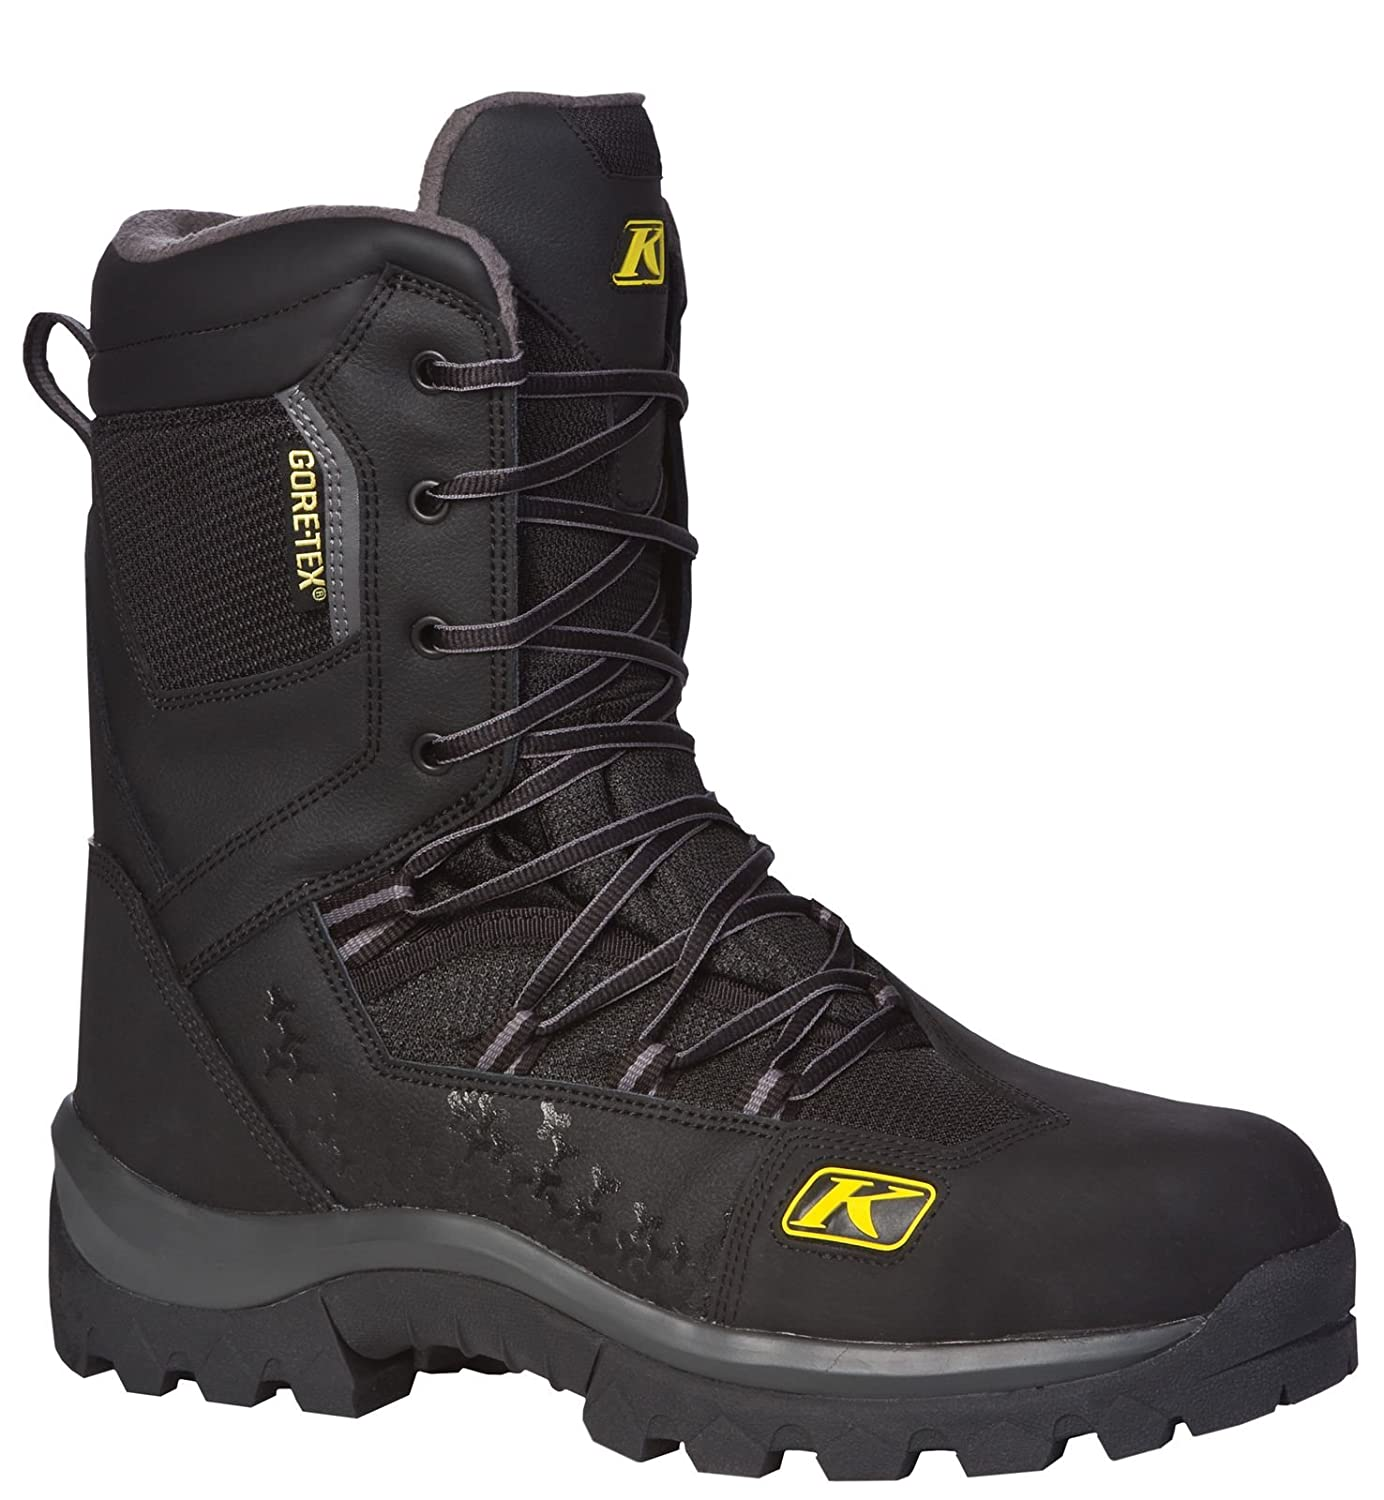 Klim 3108-001-006-000 Adrenaline GTX Boot 6 Black